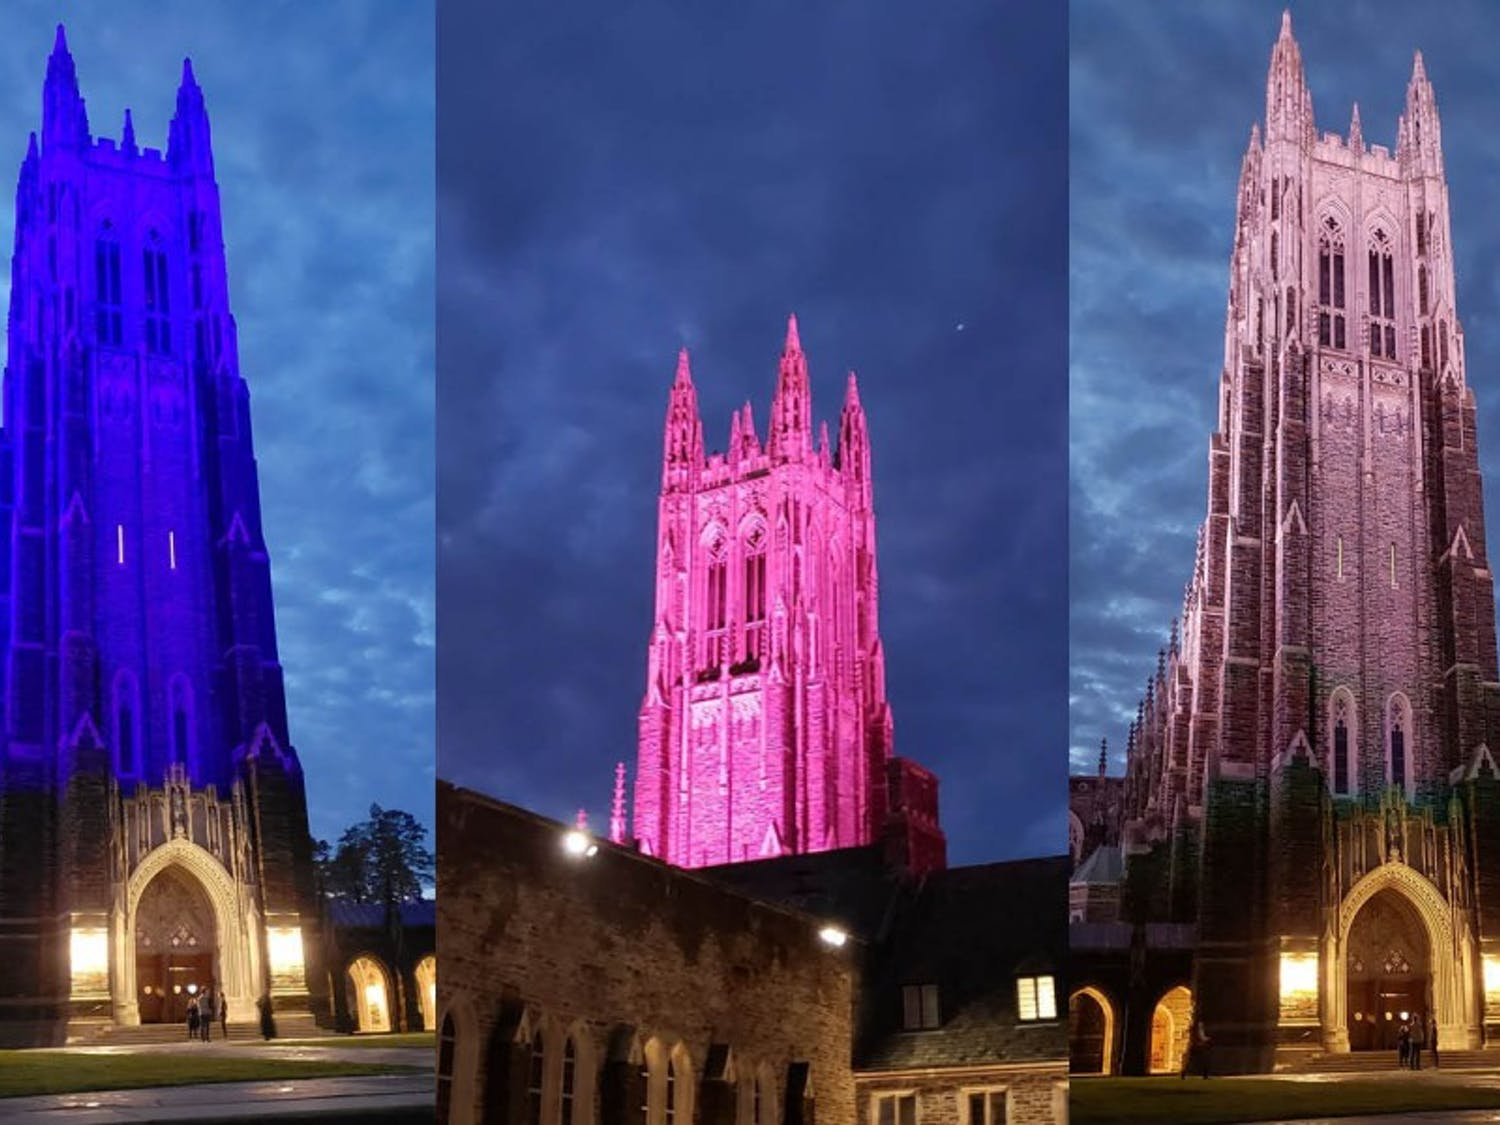 On Feb. 21, the Chapel was illuminated in a variety of colors.